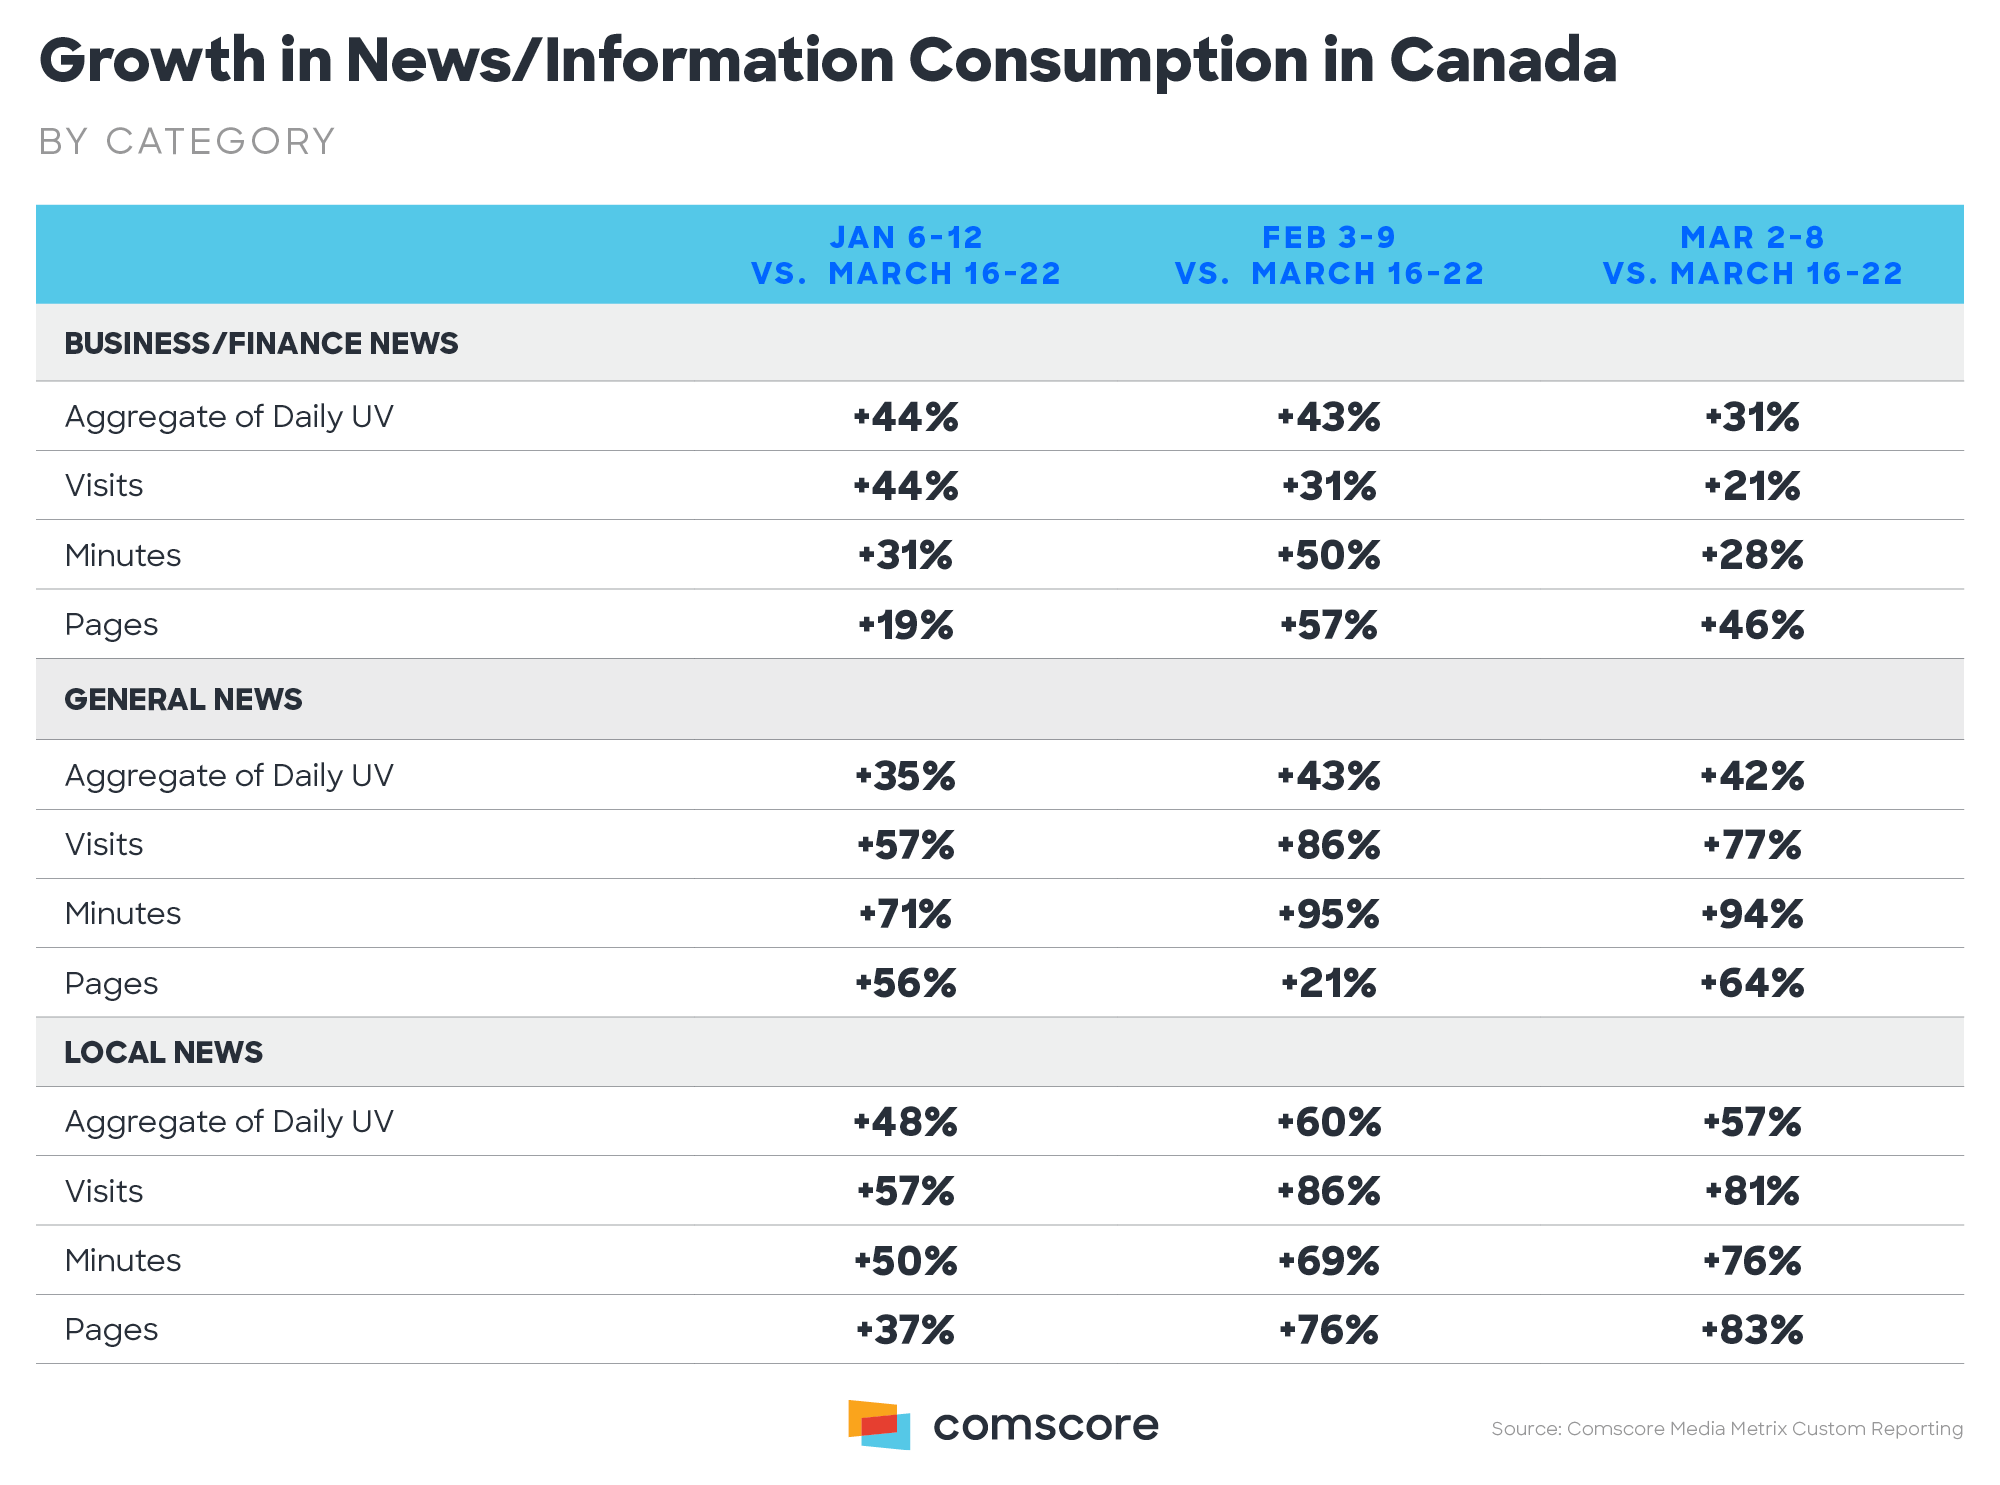 Growth in News/Information Consumption in Canada – by Category